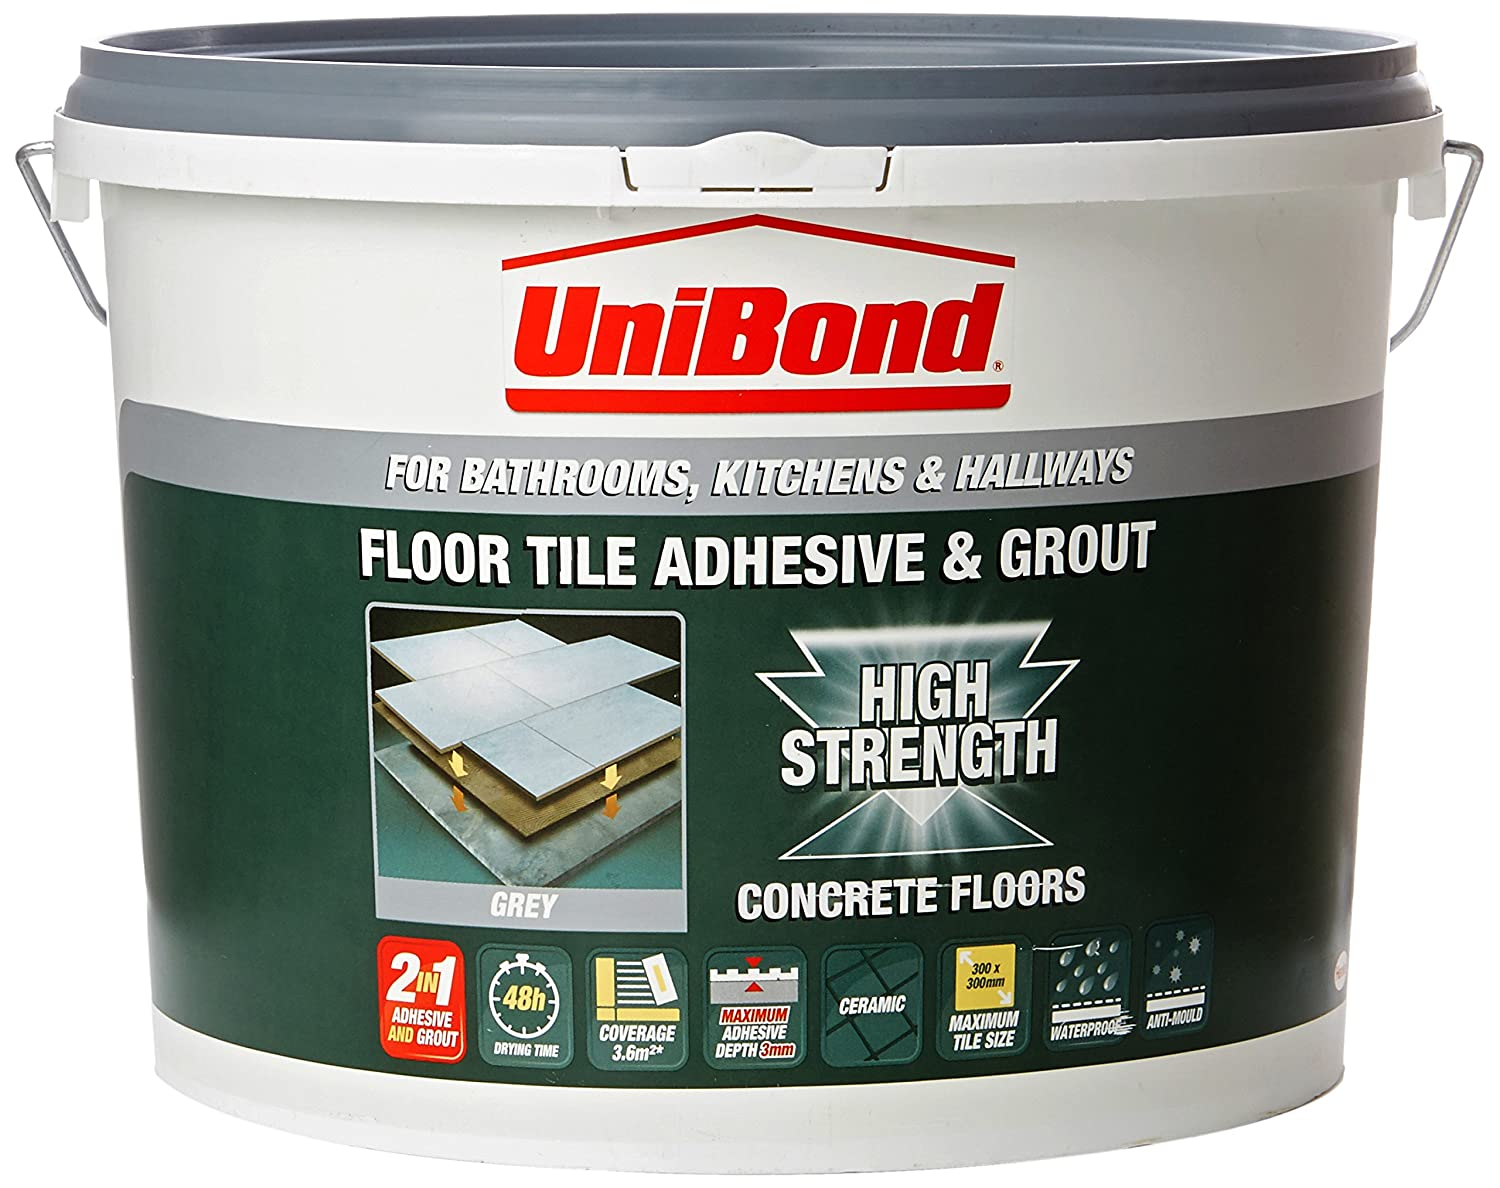 Unibond 1535346 floor tile adhesive and grout grey amazon unibond 1535346 floor tile adhesive and grout grey amazon diy tools dailygadgetfo Gallery